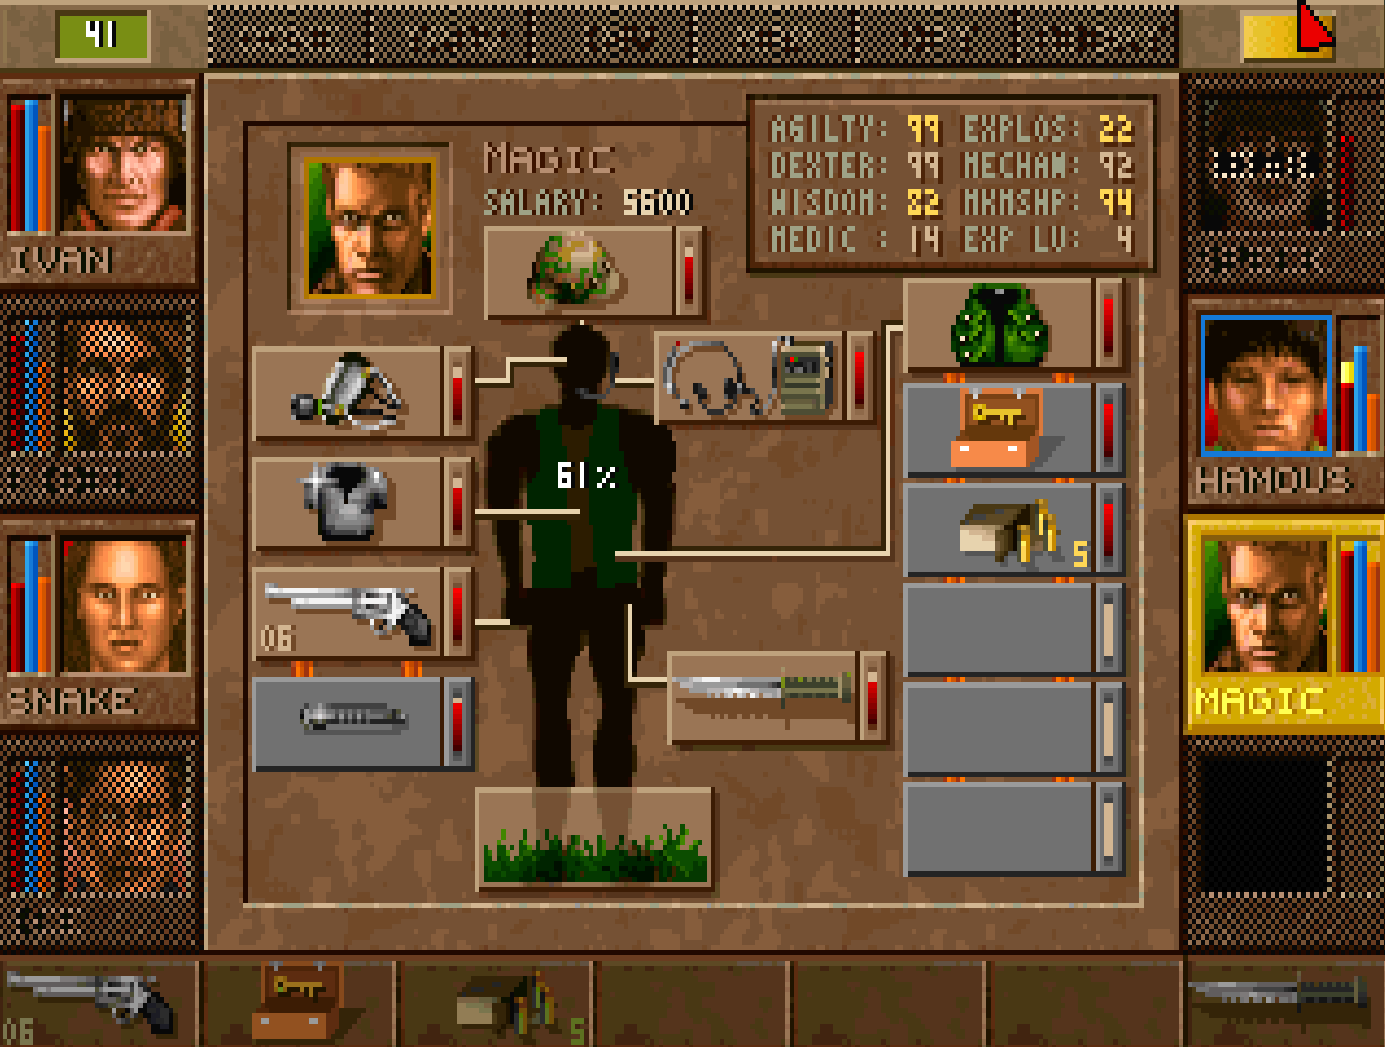 Control what weapons and accessories your MERCs carry with a few simple clicks.